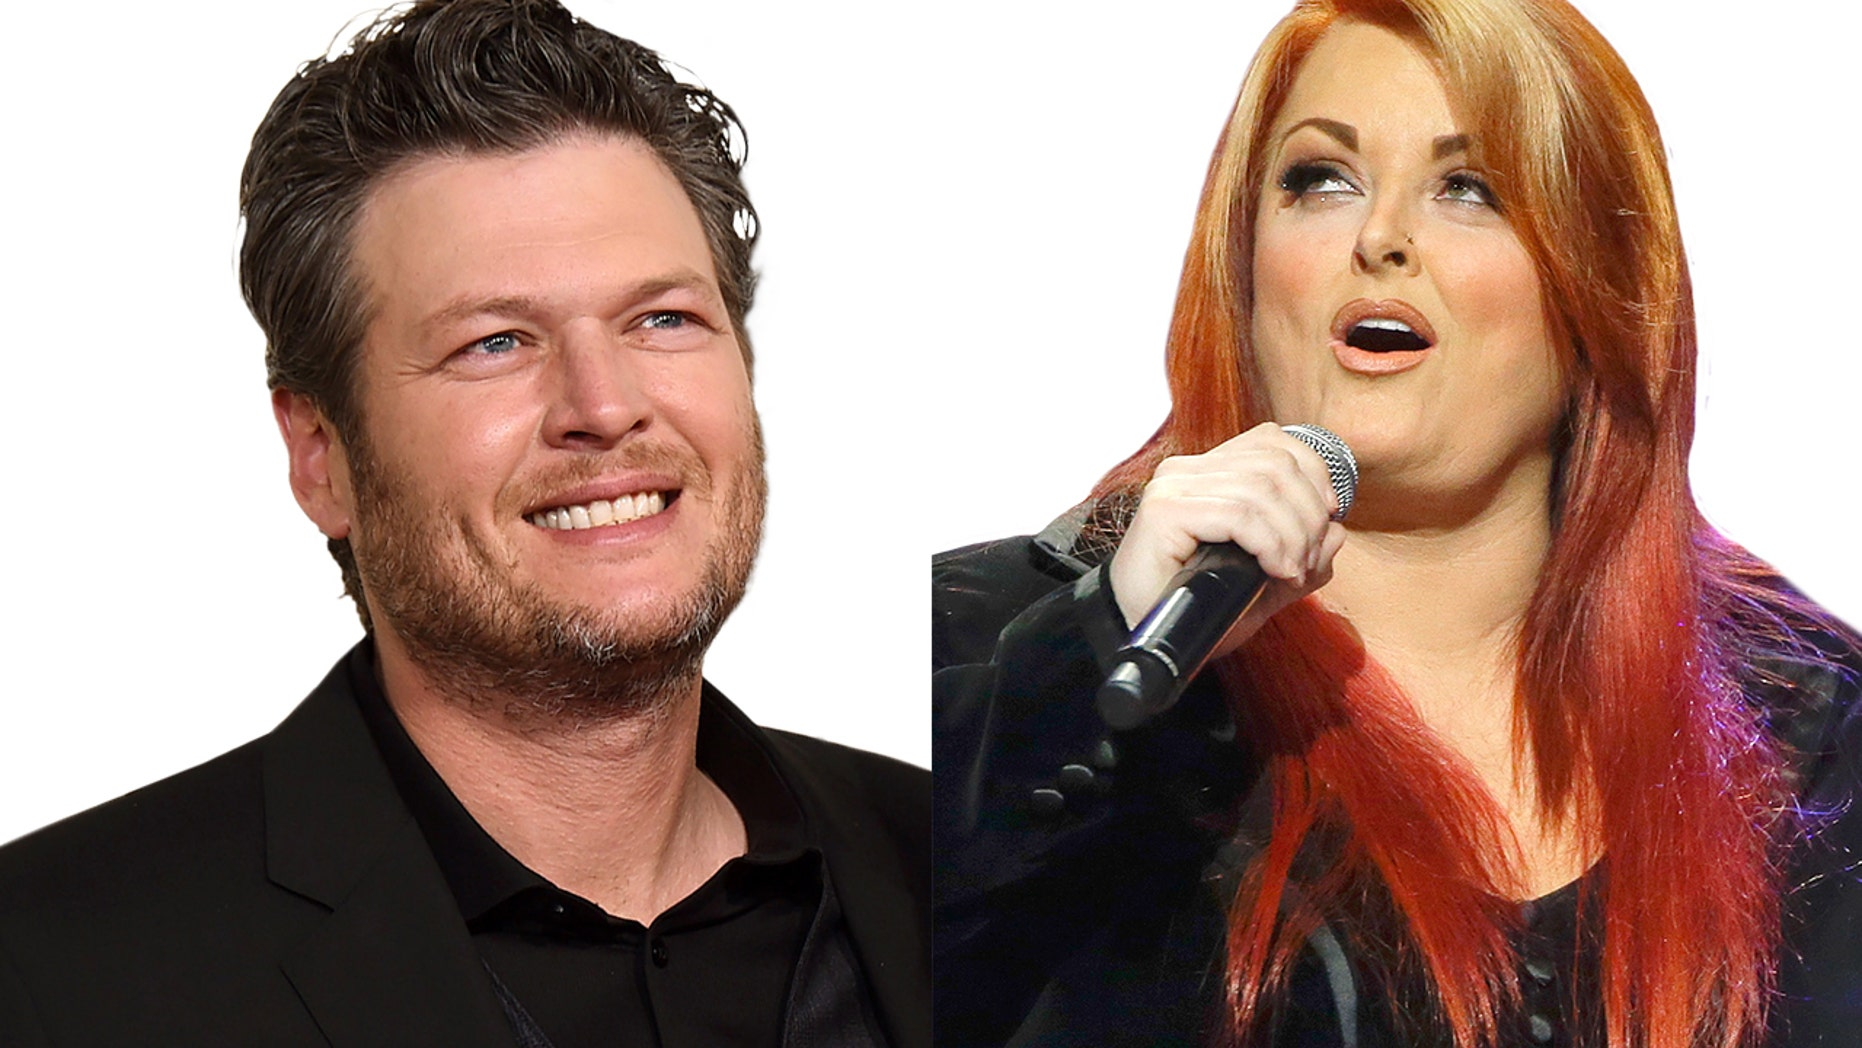 Wynonna Judd was asked about Blake Shelton's onstage drinking.